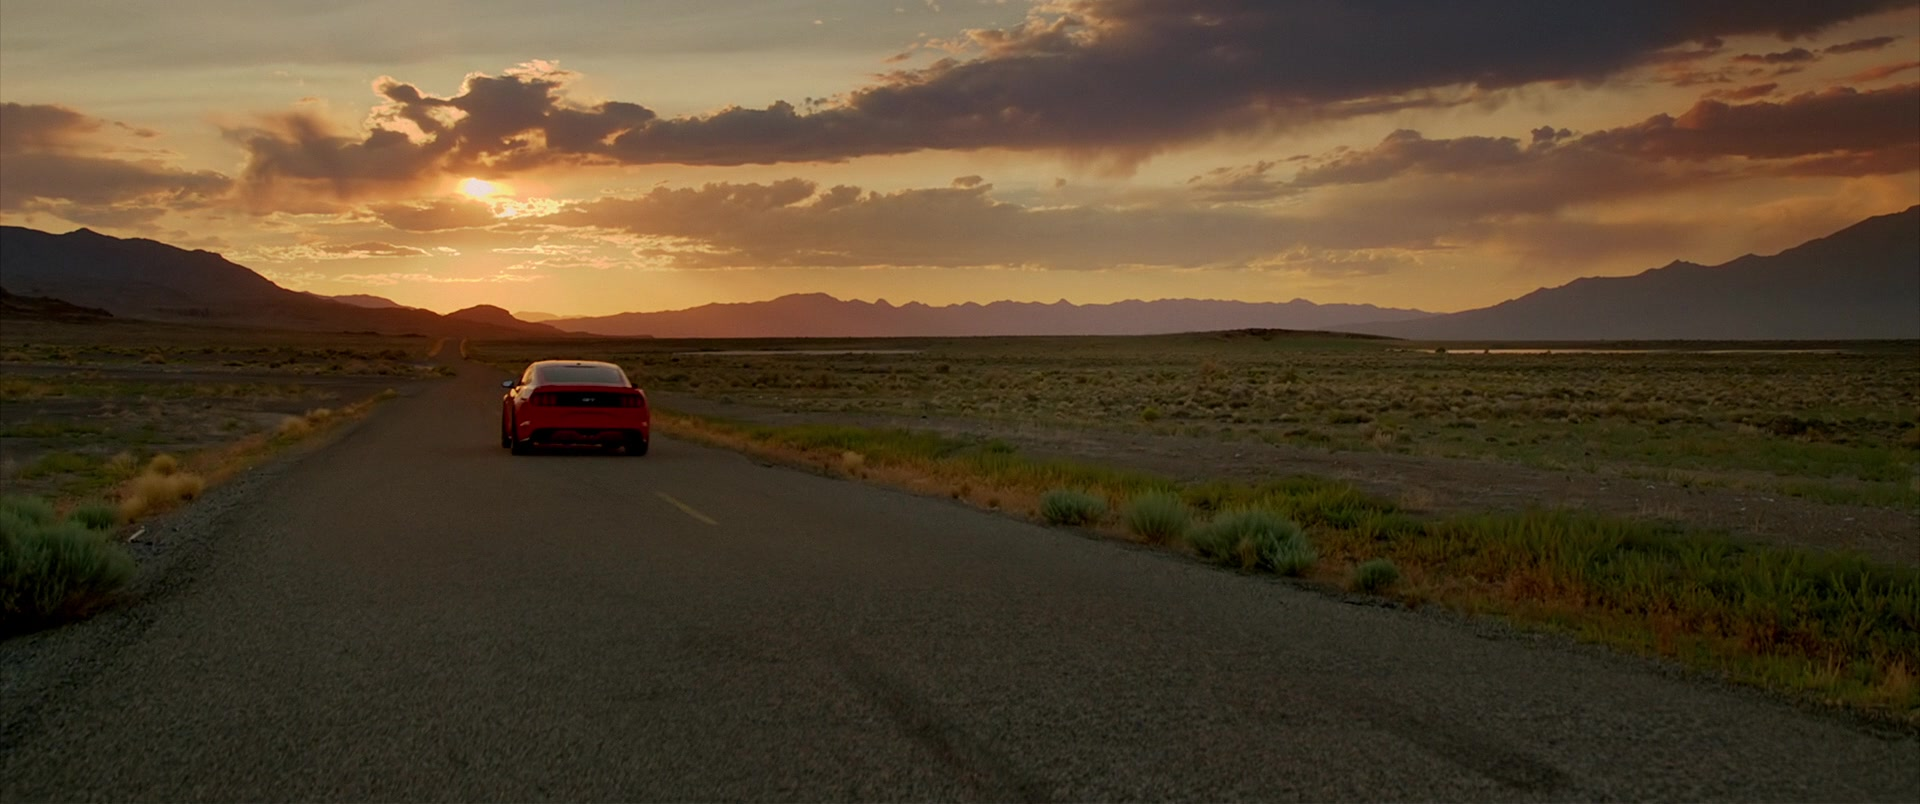 Ford Mustang Red Car Driven By Imogen Poots In Need For